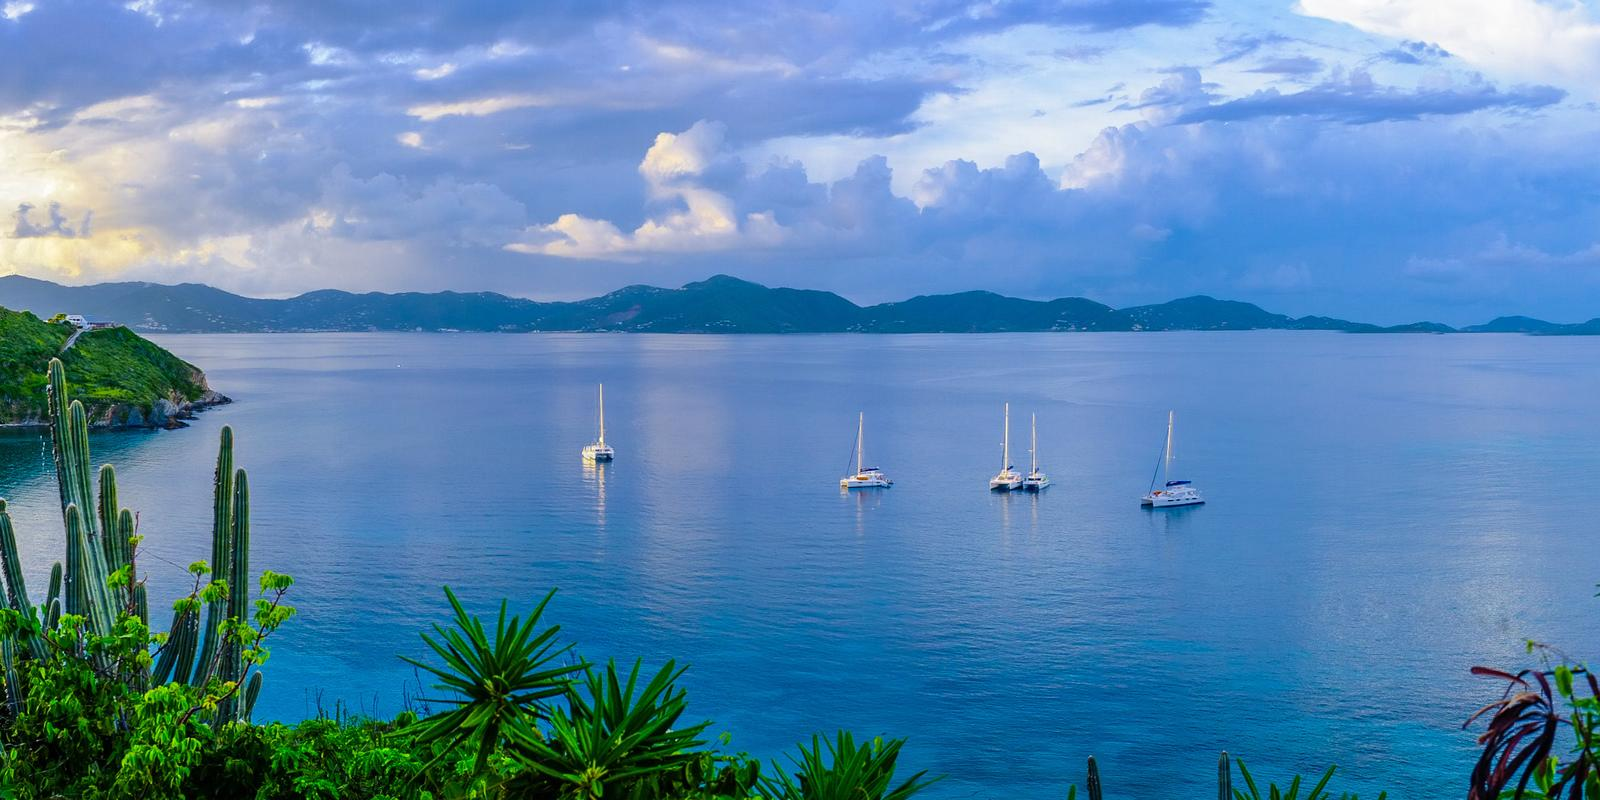 Premium Cruise 8 days on a Catamaran with hostess in the Virgin British Islands - All Inclusive